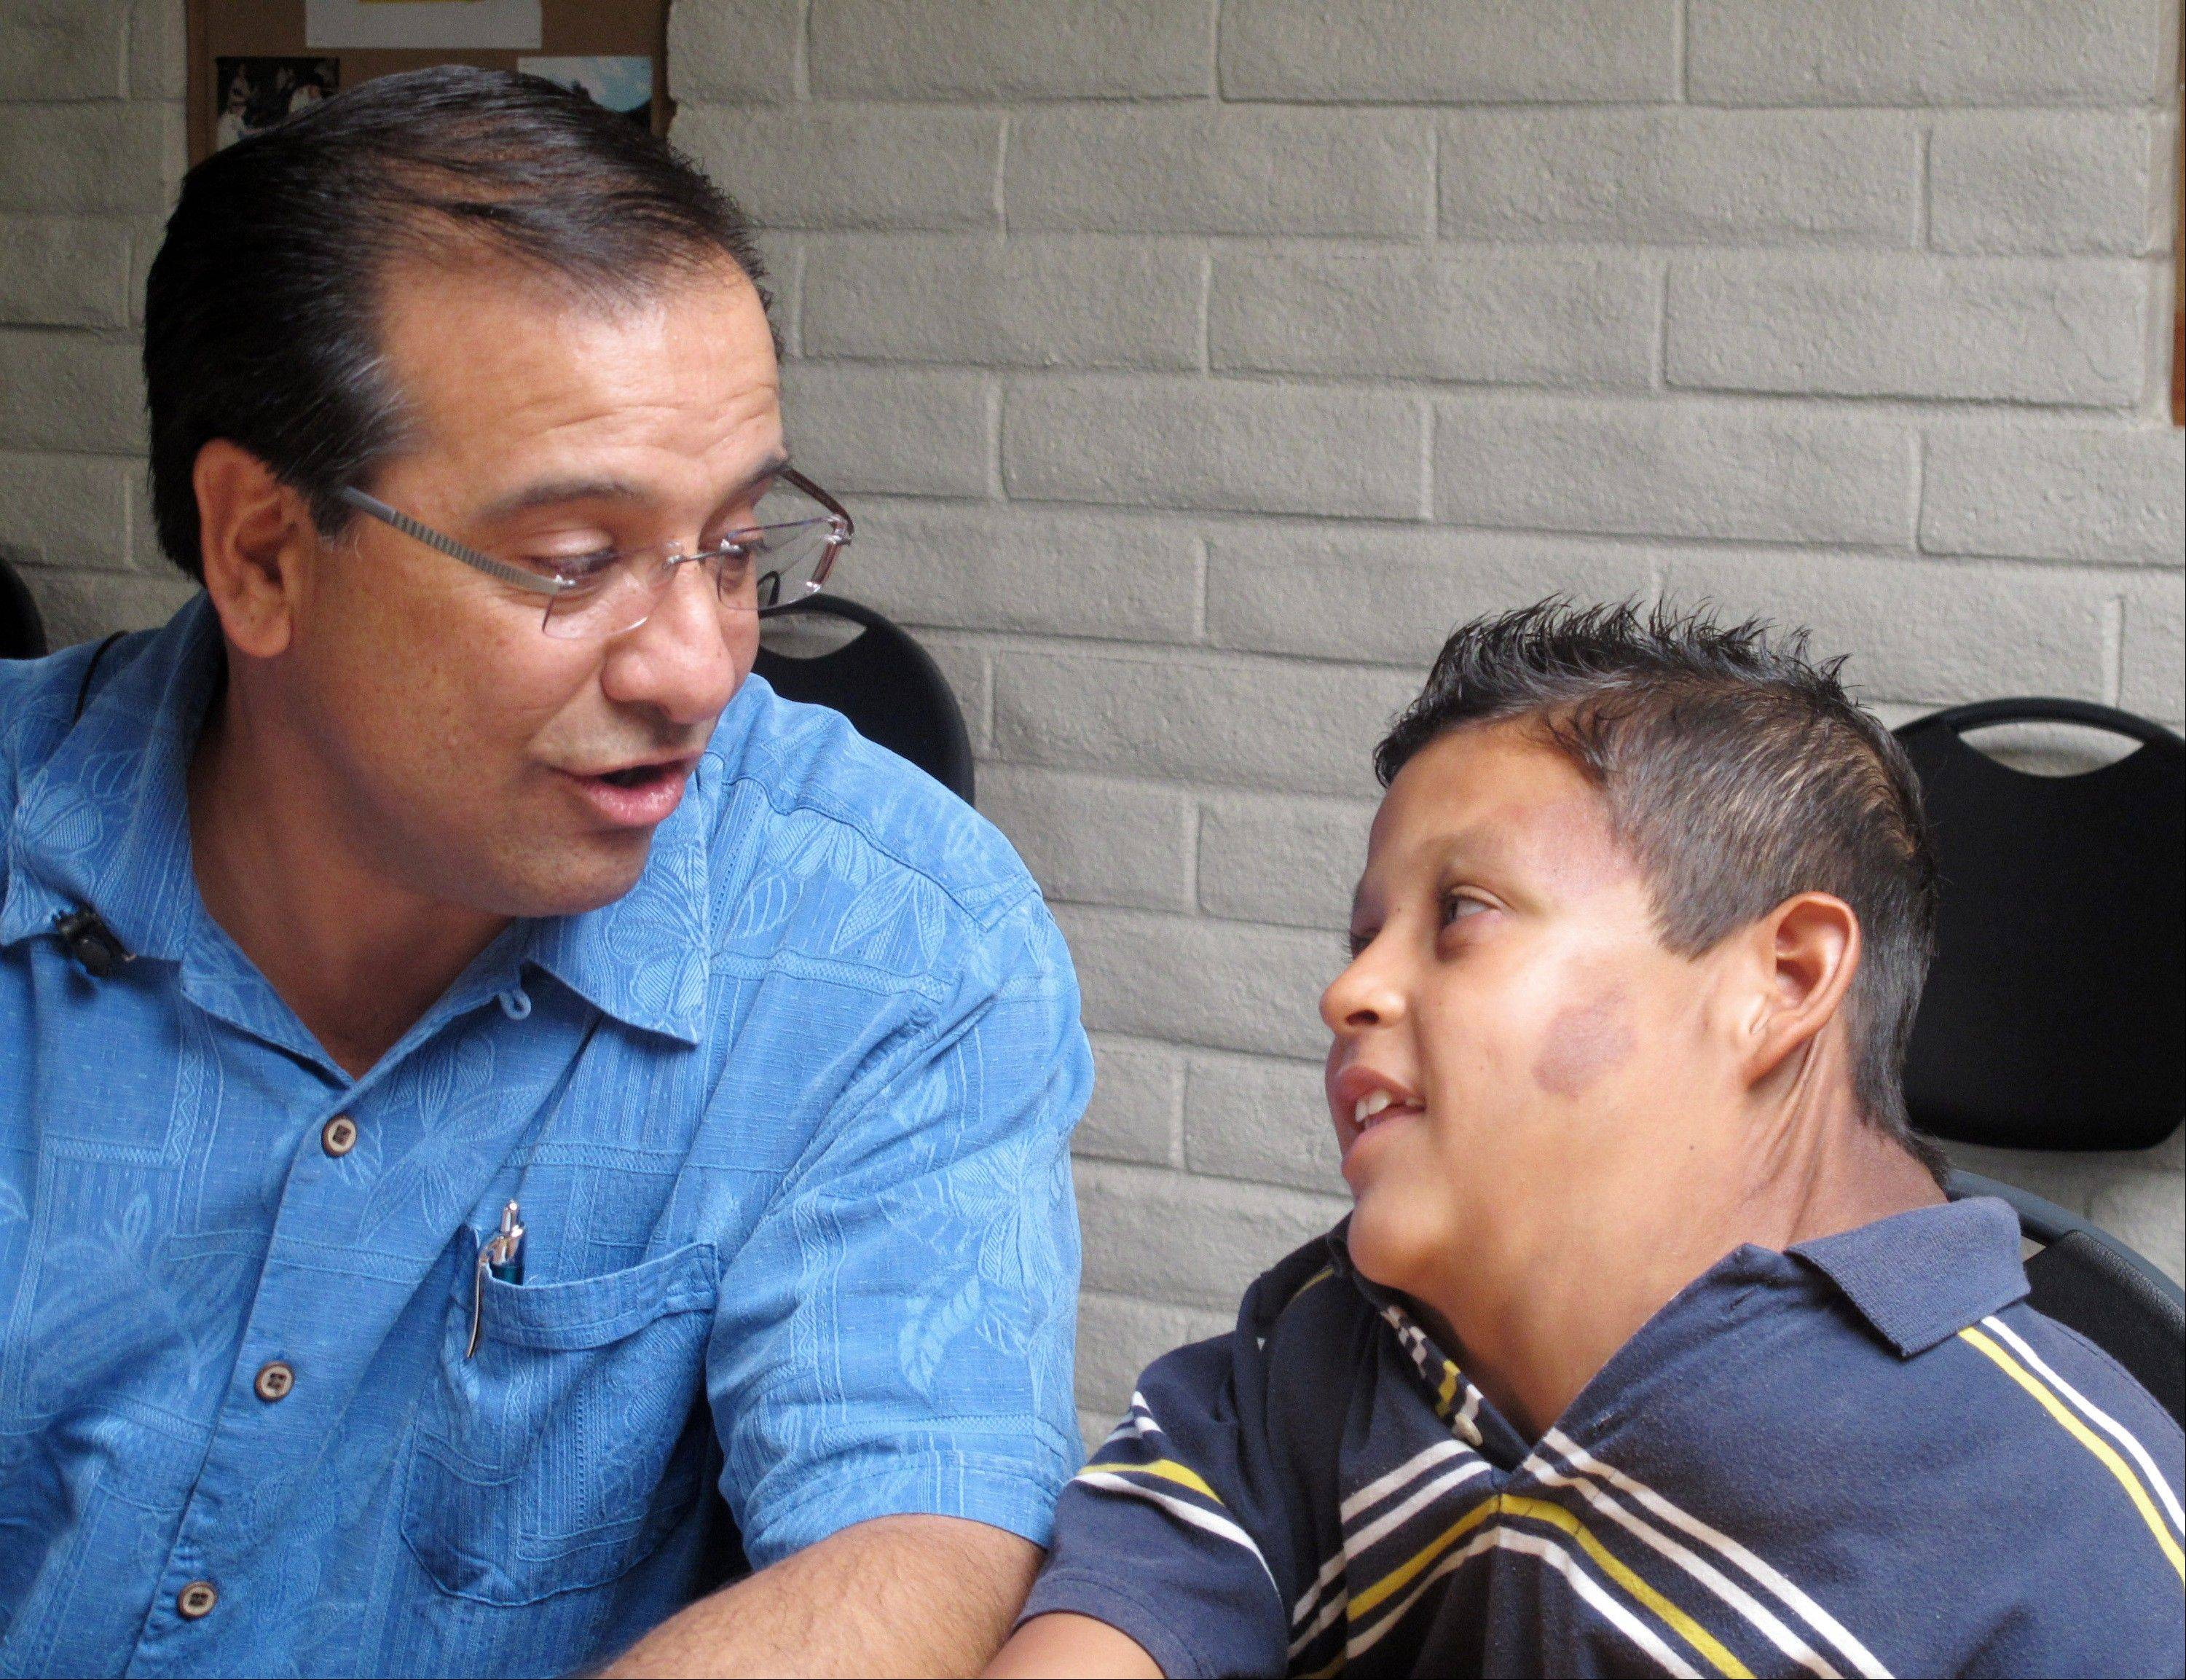 Si Budagher, the pastor of First Baptist Church of Rio Rancho, N.M. speaks Friday with a 9-year-old Juarez, Mexico-born boy suffering from massive tumor who U.S. Homeland Security identified only as �Jose.�